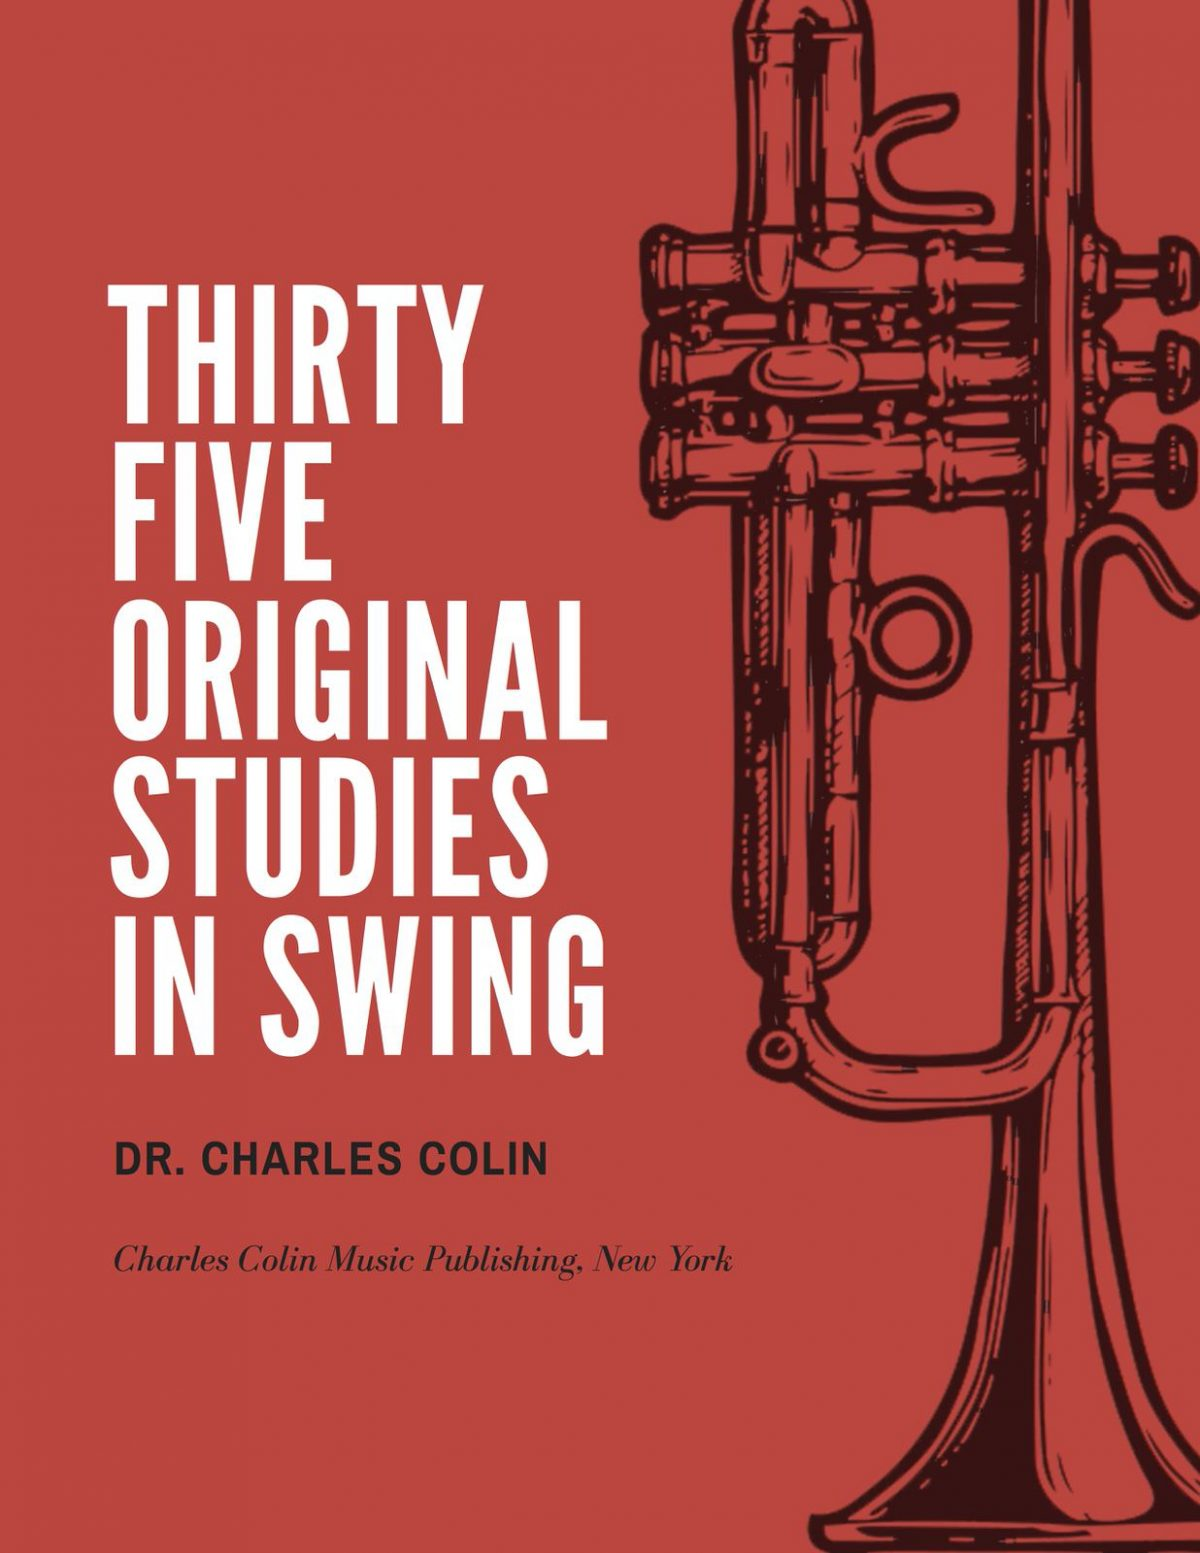 Colin, 35 Original Studies in Swing-p01